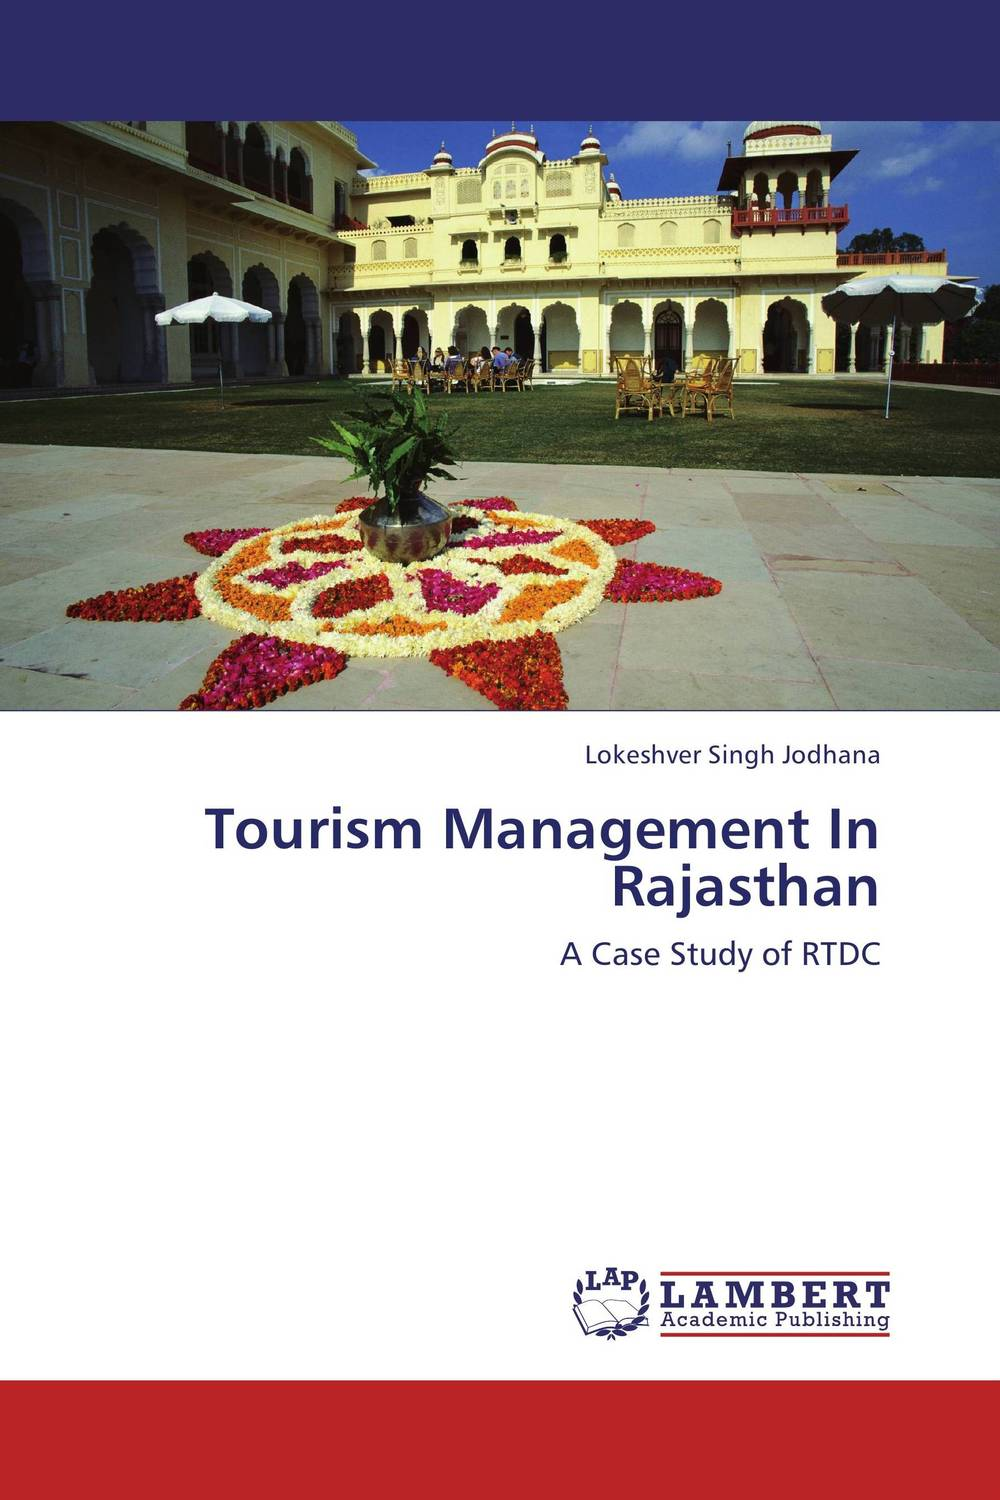 Tourism Management In Rajasthan